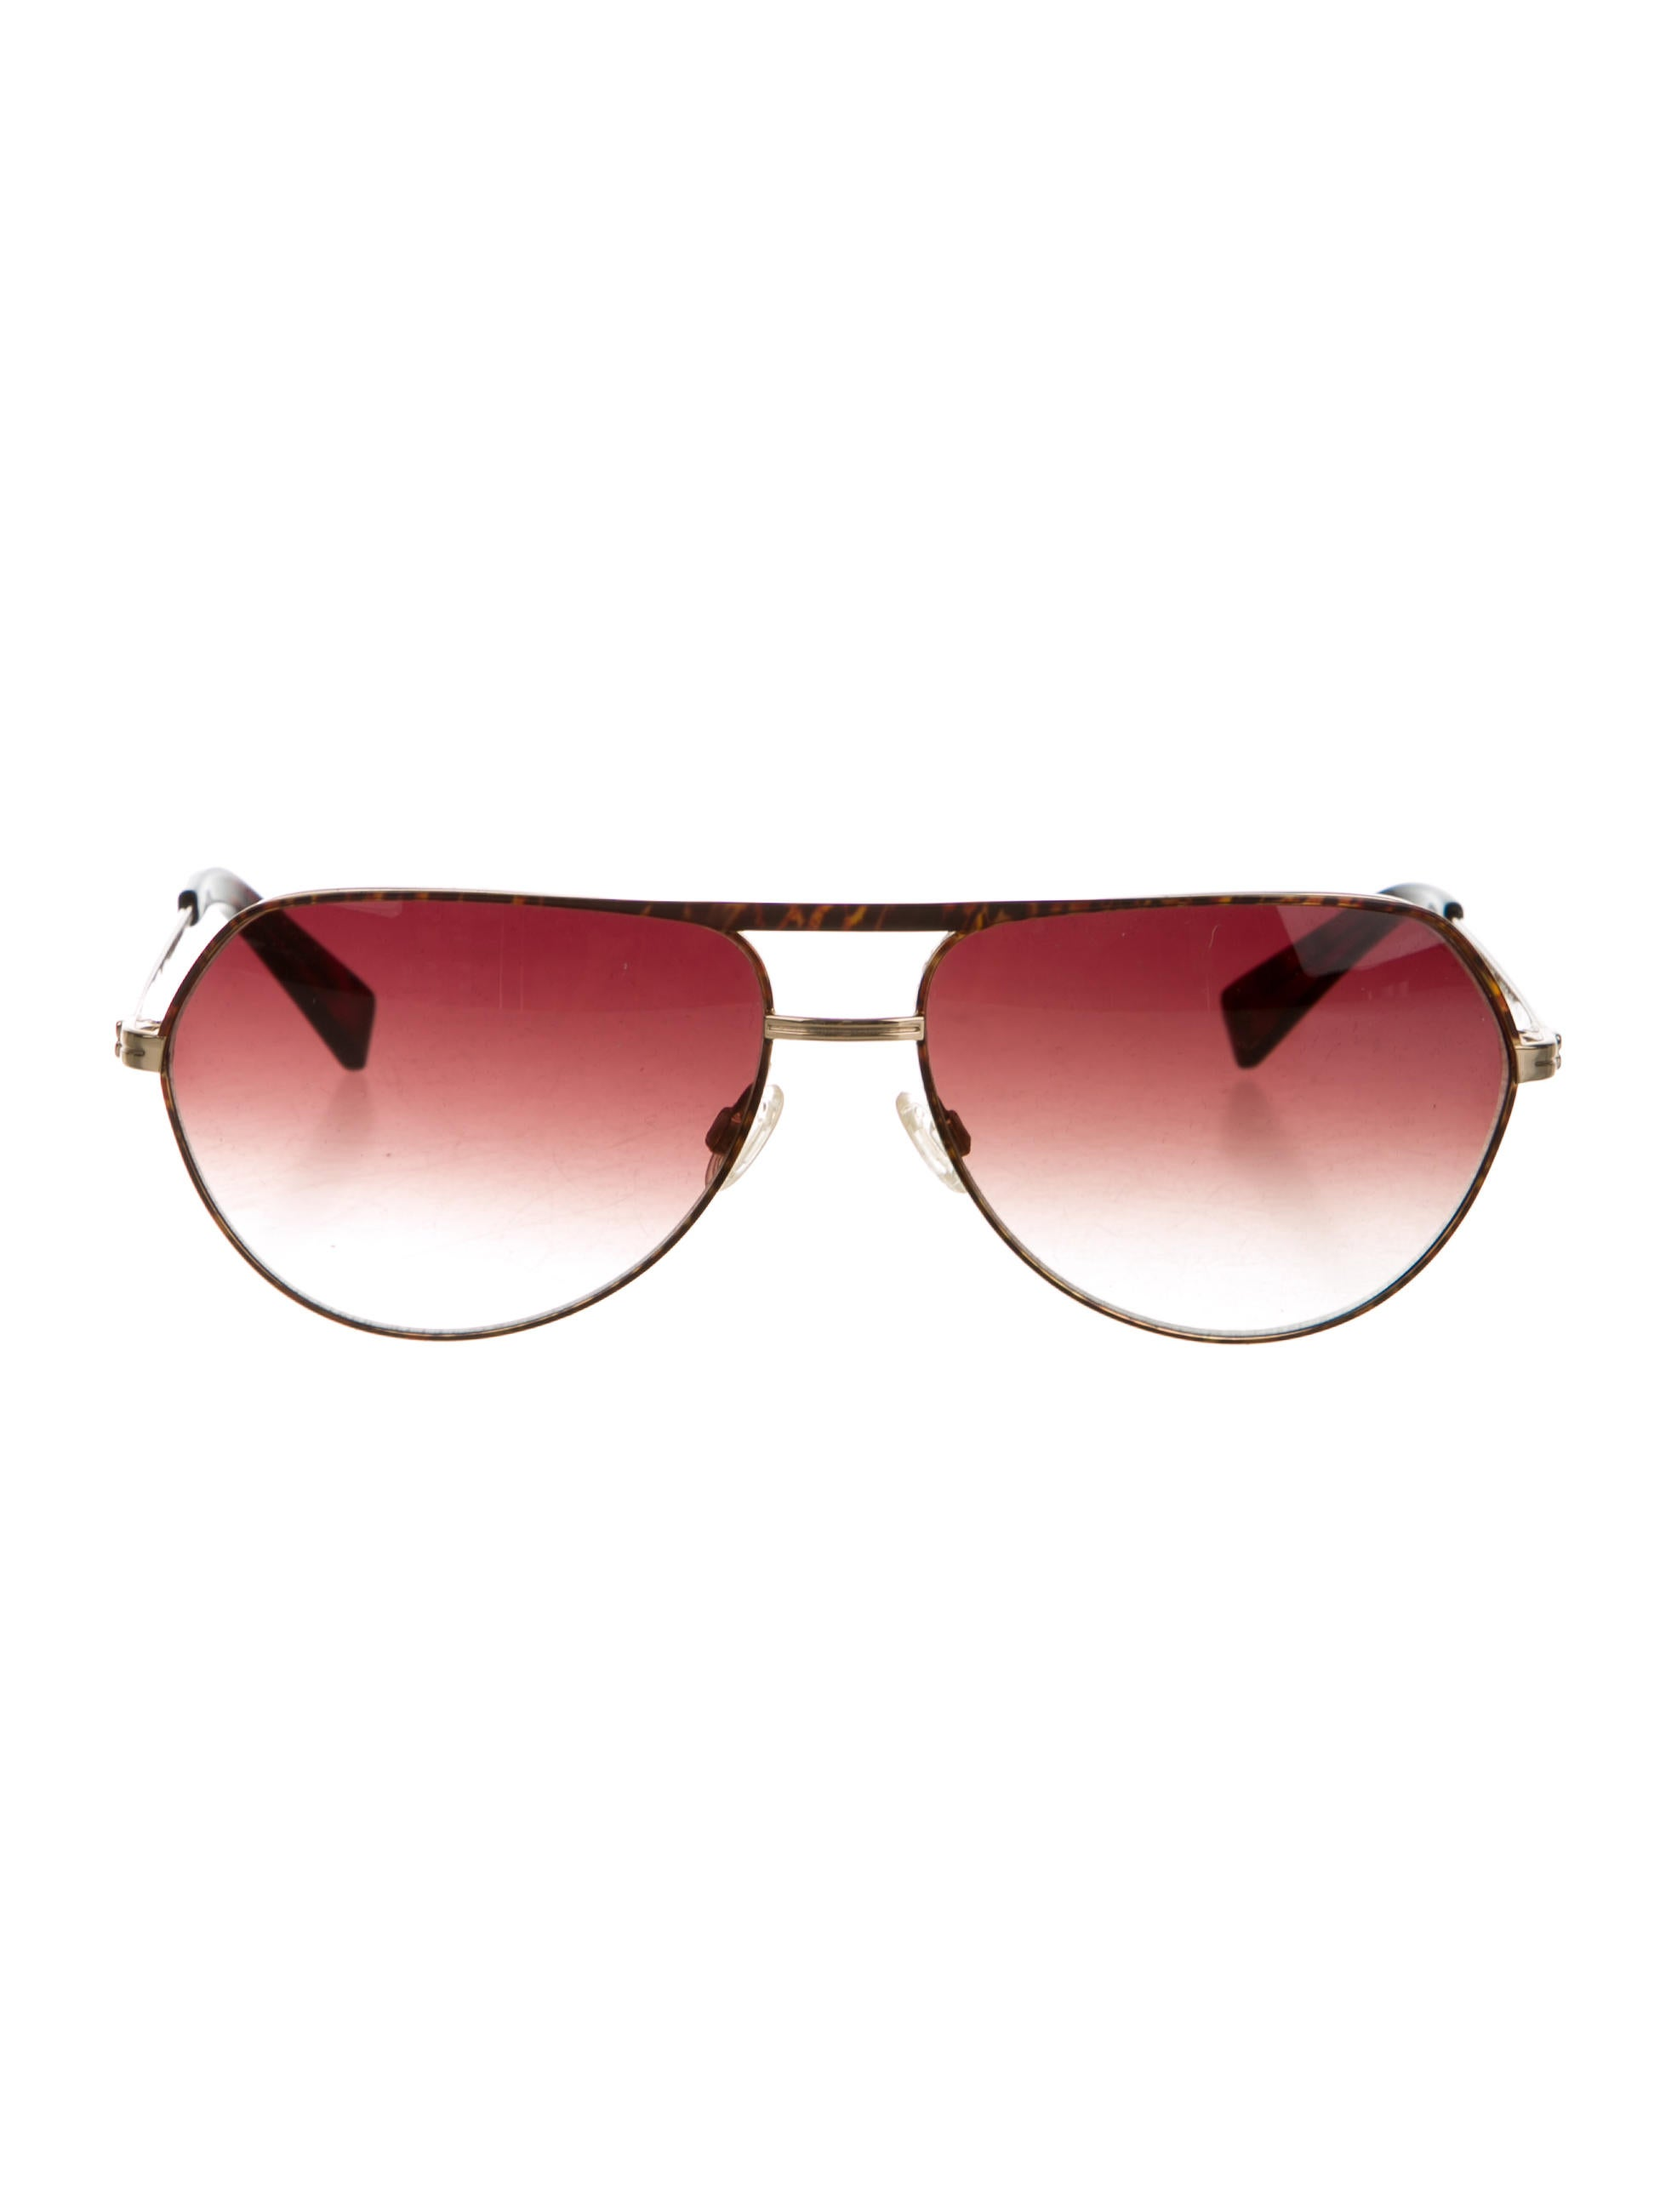 92f4df1048 Paul Smith Aviator Gradient Lens Sunglasses - Accessories - WPS22392